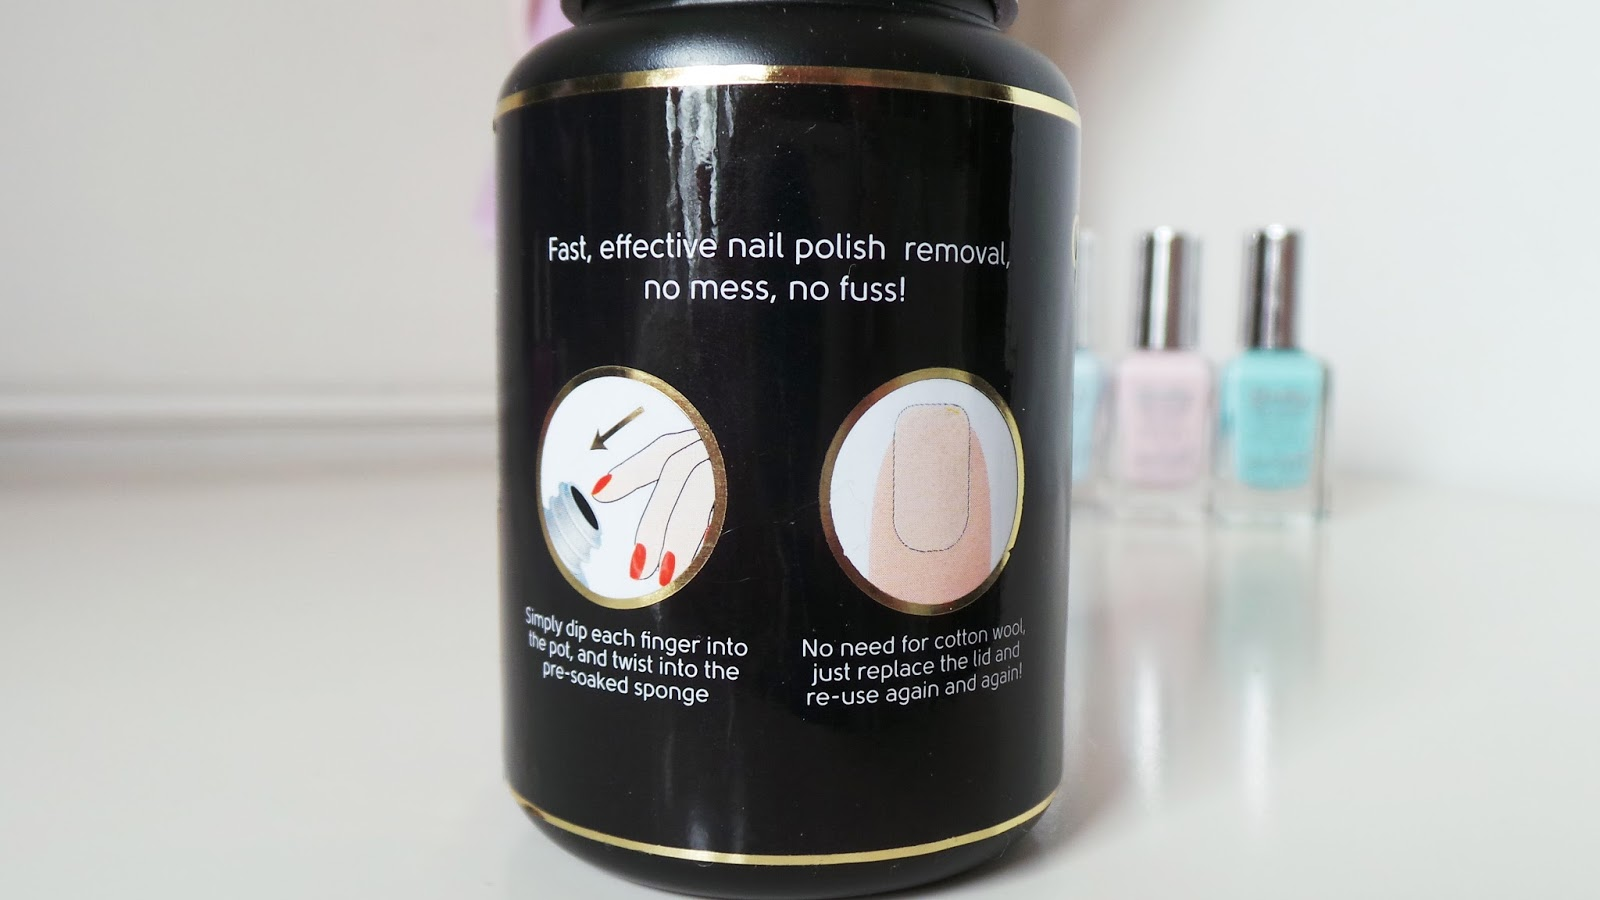 nail polish remover pot, primark nail polish remover pot, P.S primark nail polish remover pot, P.S Primark nails, Primark Nails review, primark nail polish review, nail blogger, uk nail blog, uk nail blogger, beauty blogger, uk beauty blogger, uk beauty blog, beauty blog, bourjois magic 1 second dupe, bourjois magic nail polish remover dupe